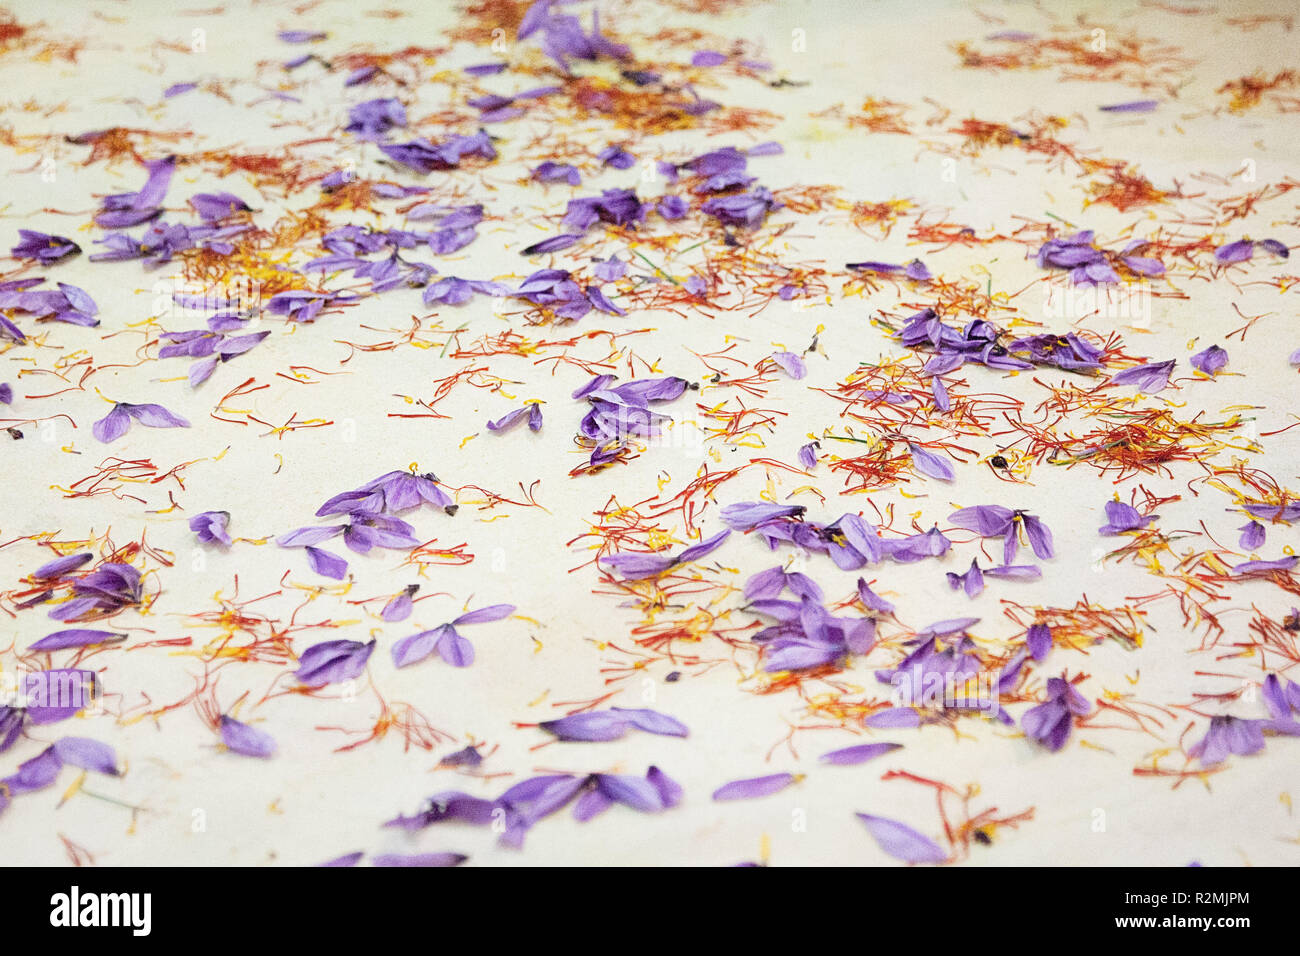 The saffron flowers and saffron threads lying separately on a white cloth to be collected later, - Stock Image